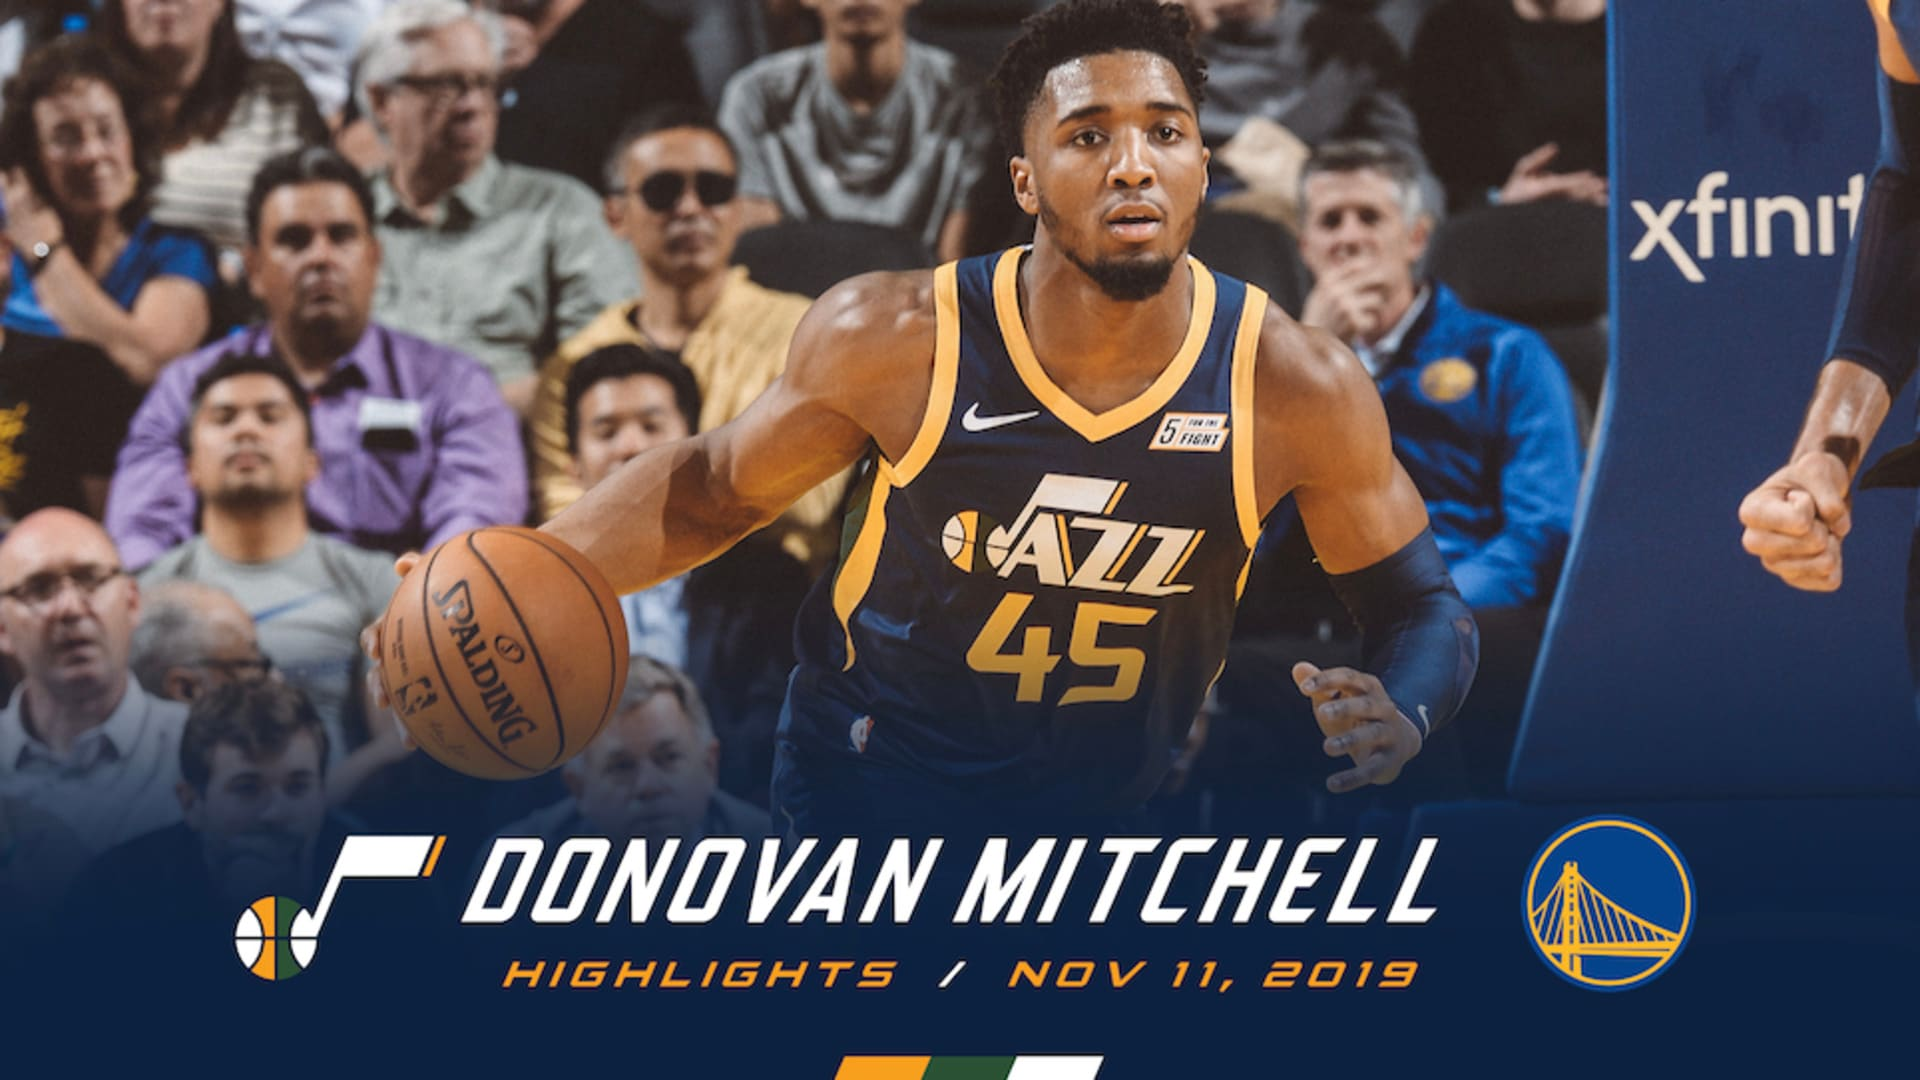 Highlights: Donovan Mitchell - 23 points, 8 rebounds